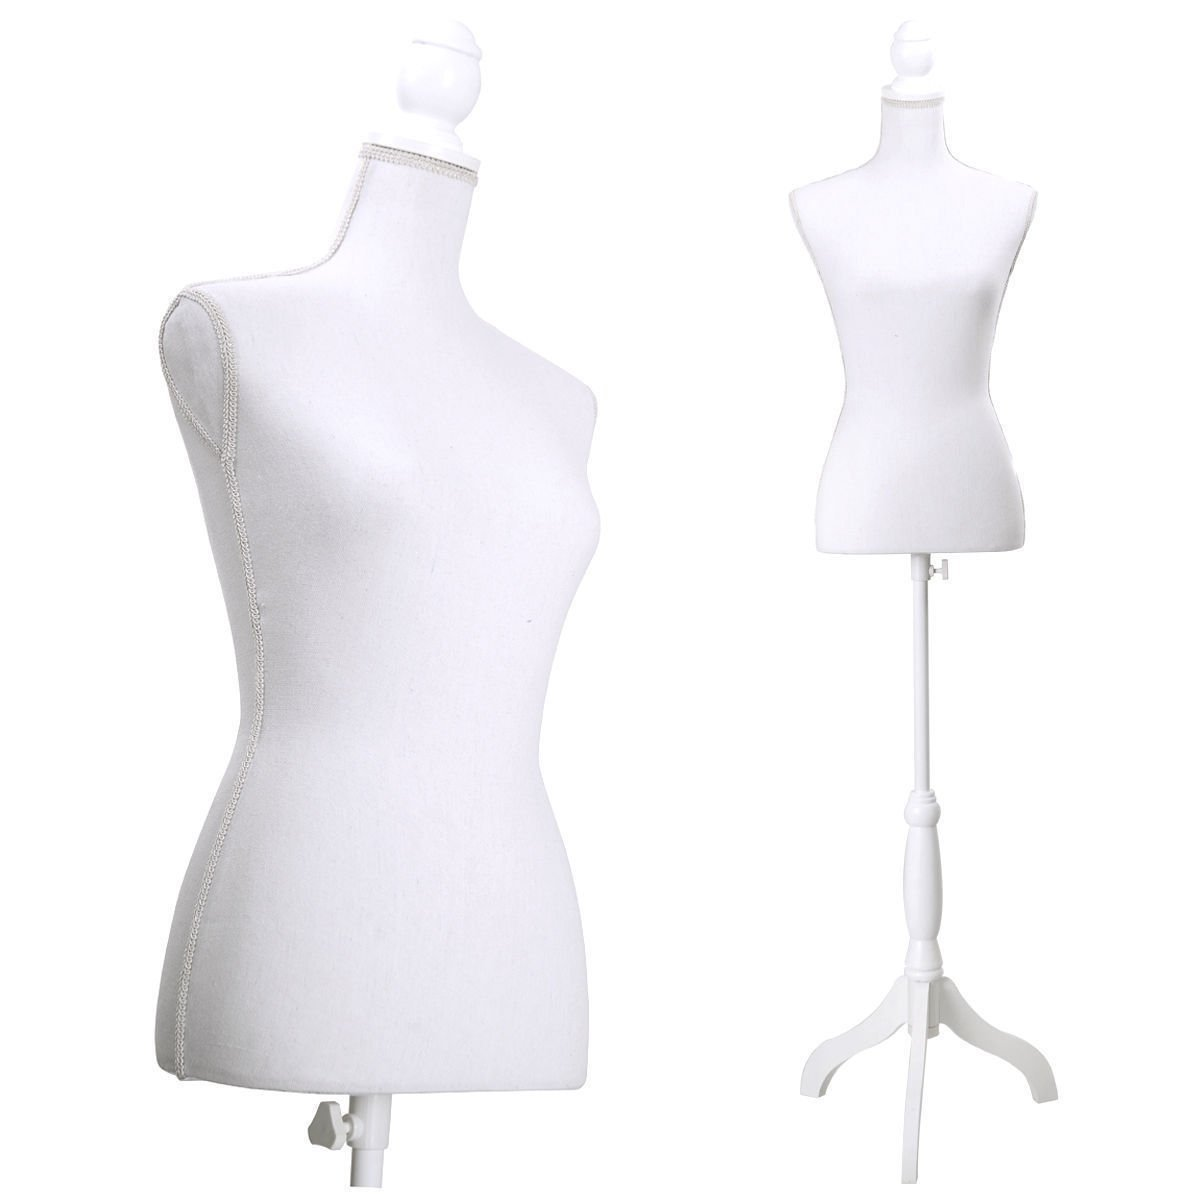 JAXPETY Female Mannequin Torso Clothing Display W/ White Tripod Stand New White by JAXPETY